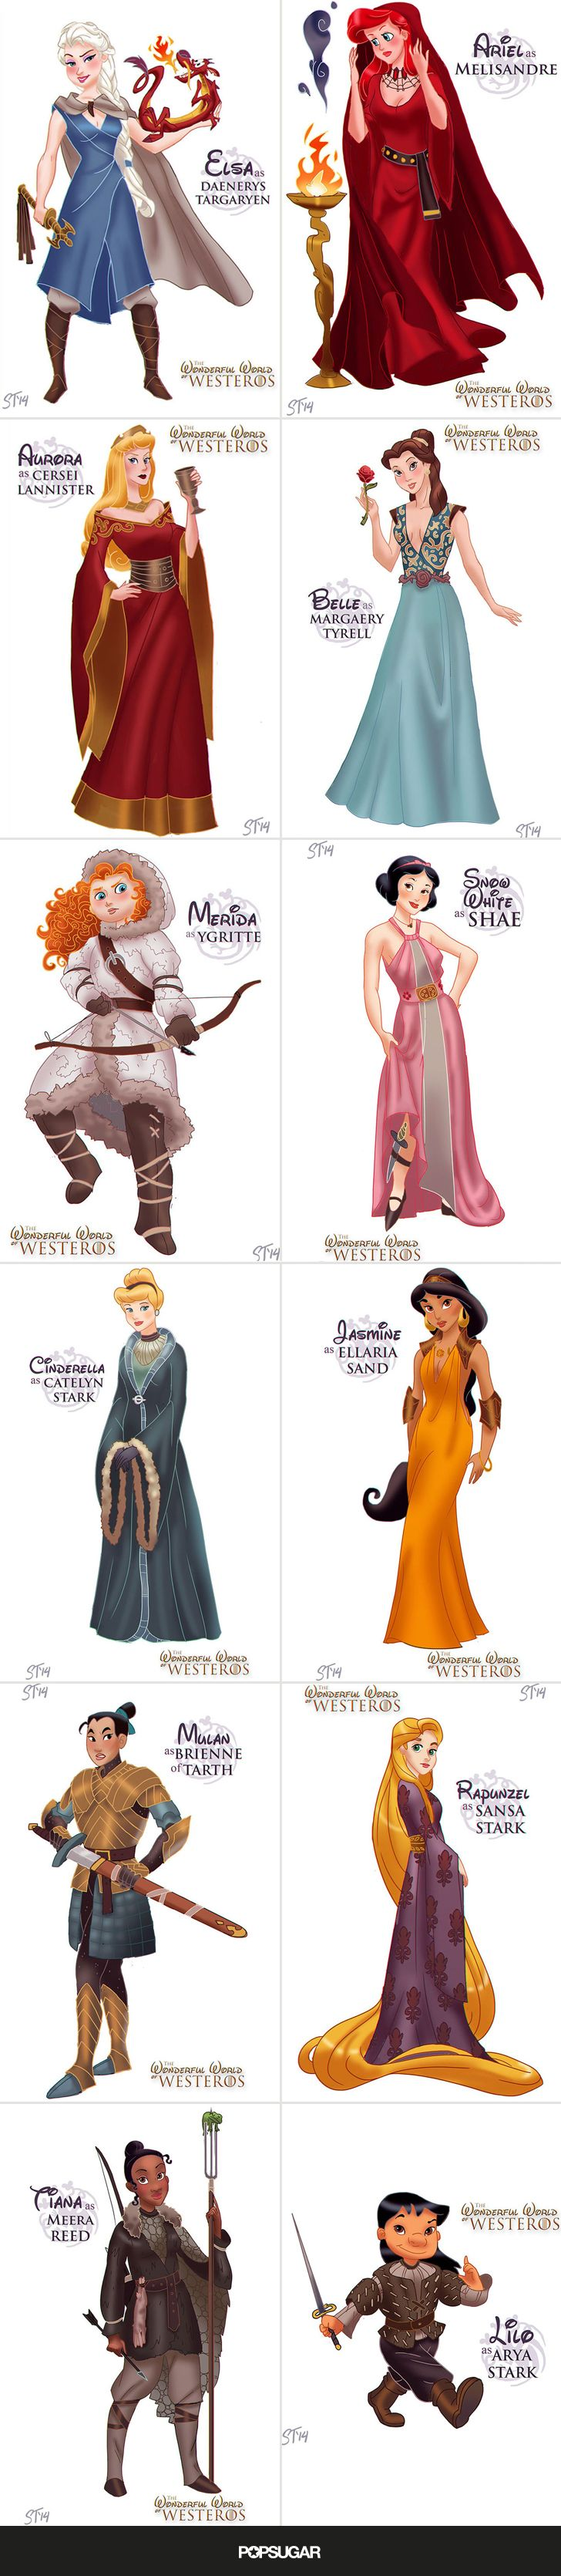 Uncategorized Disney Drawing Games best 25 disney princess games ideas on pinterest princesses as the women of game thrones